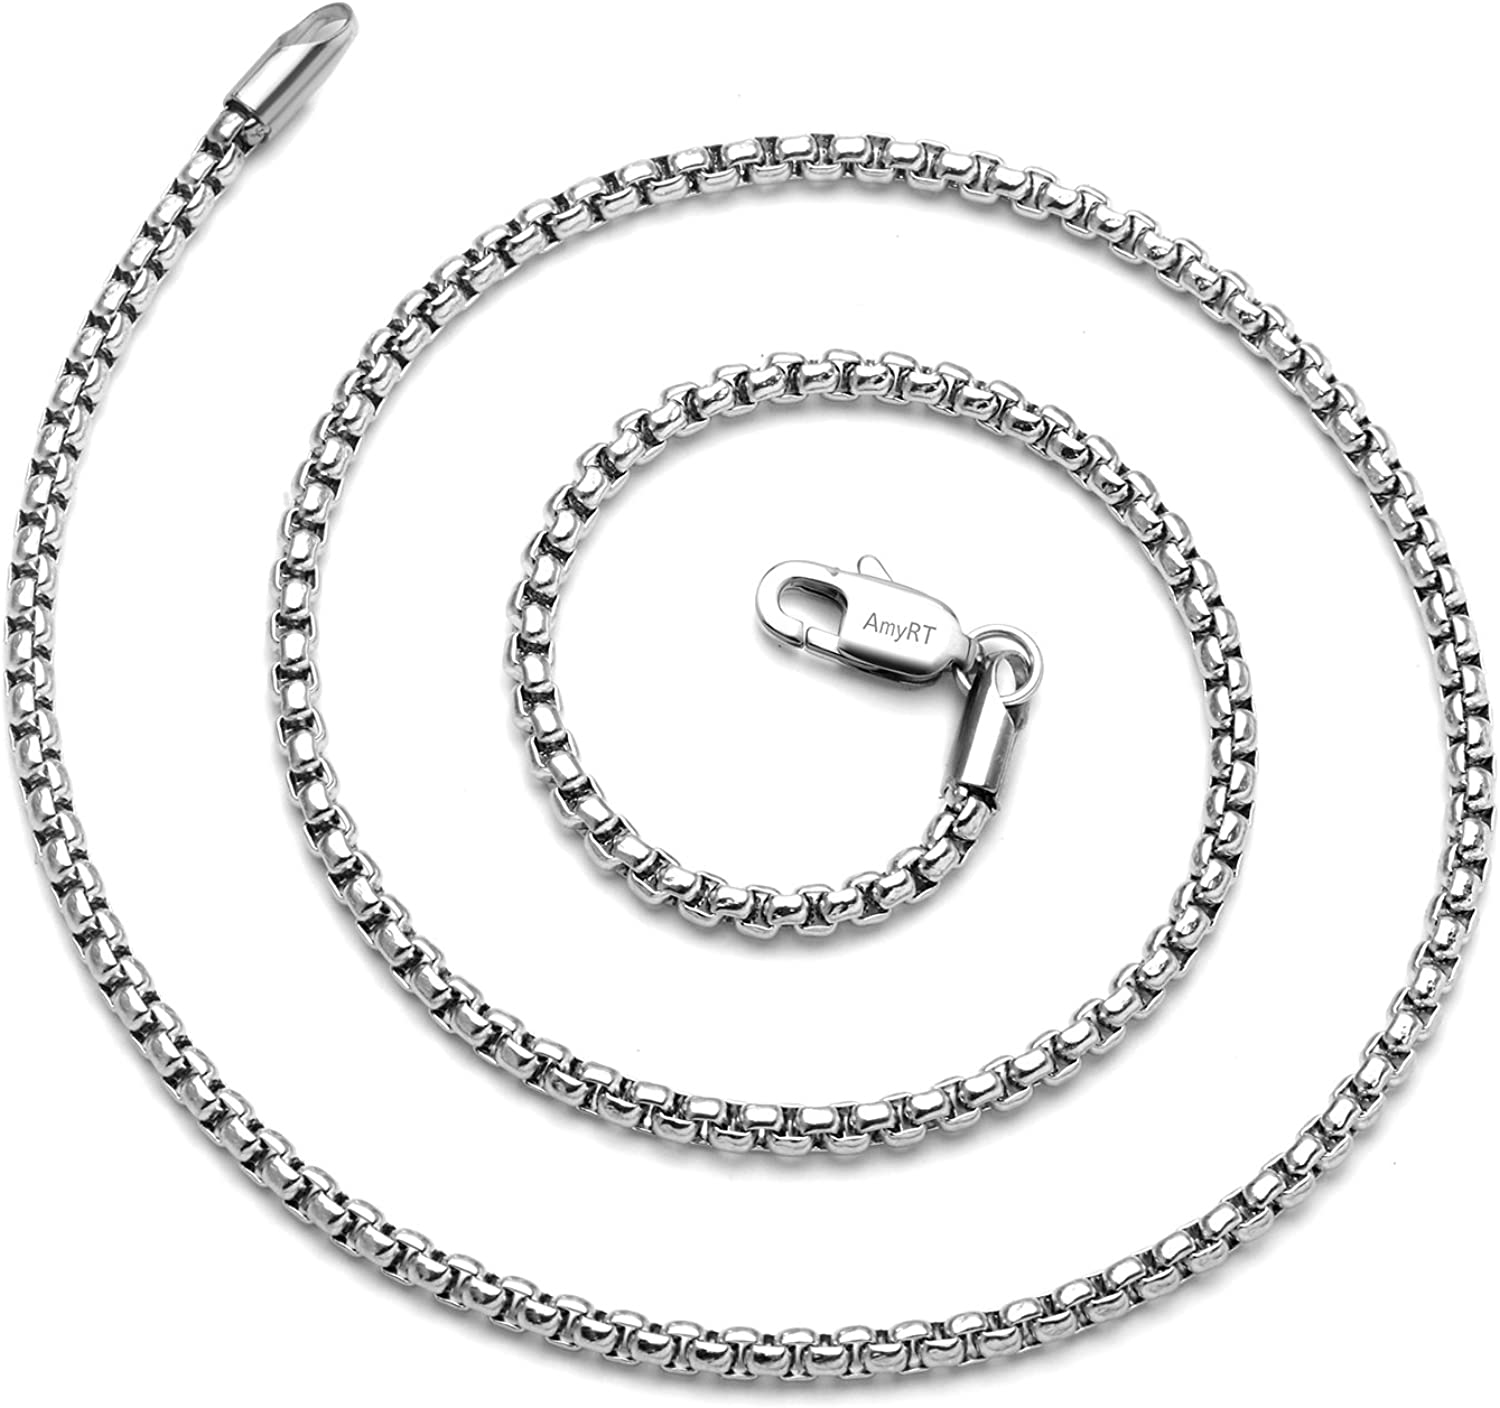 """AmyRT Jewelry 3mm Titanium Steel Rolo Silver Chain Necklaces for Women Men 16"""" - 30"""""""